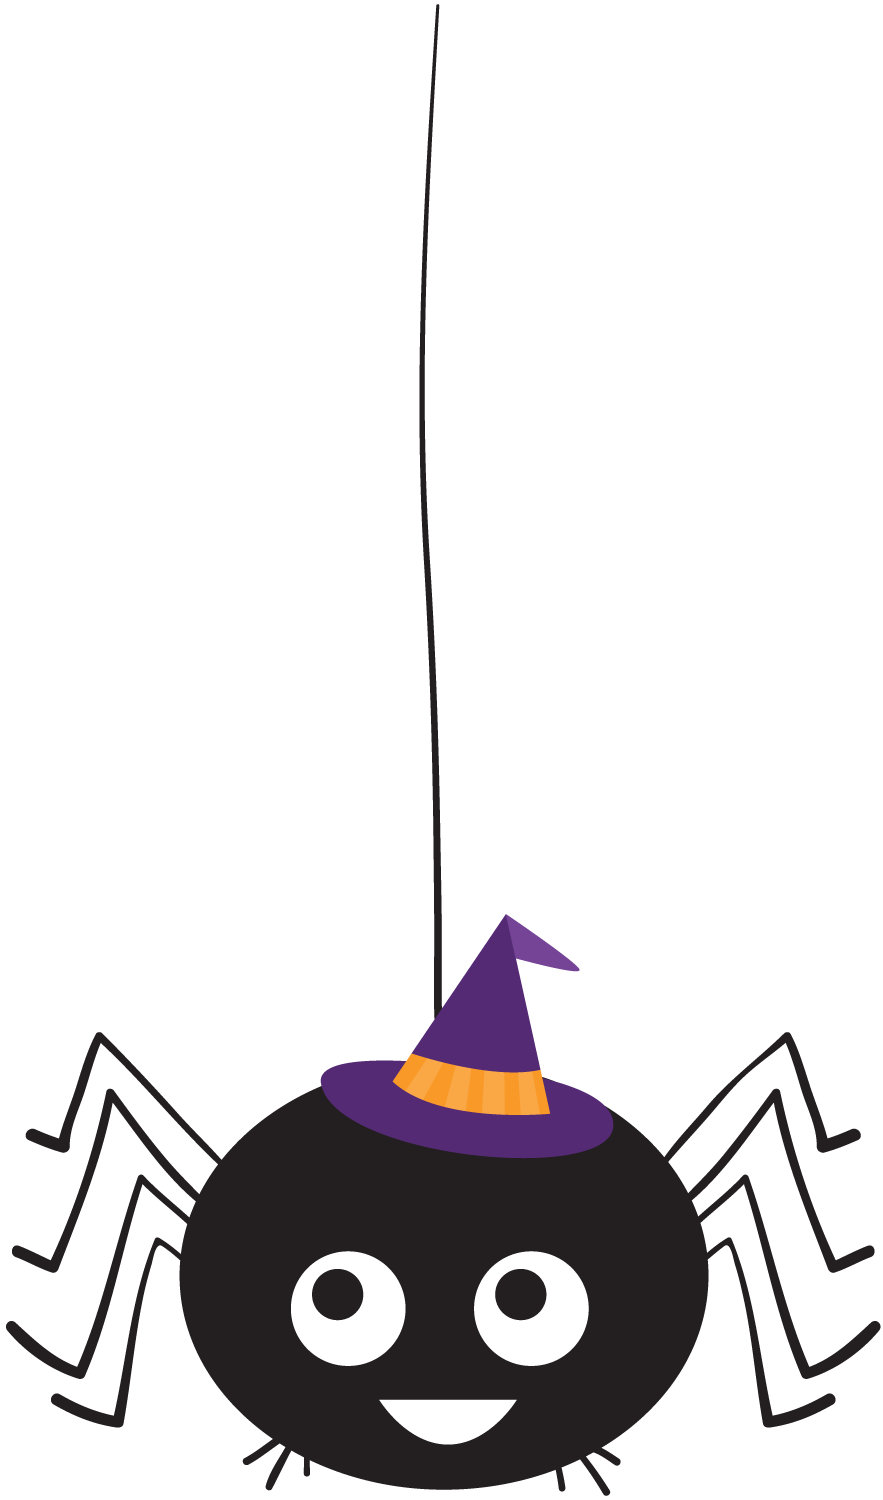 Halloween Spiders Clipart. | Oh My Fiesta! in english